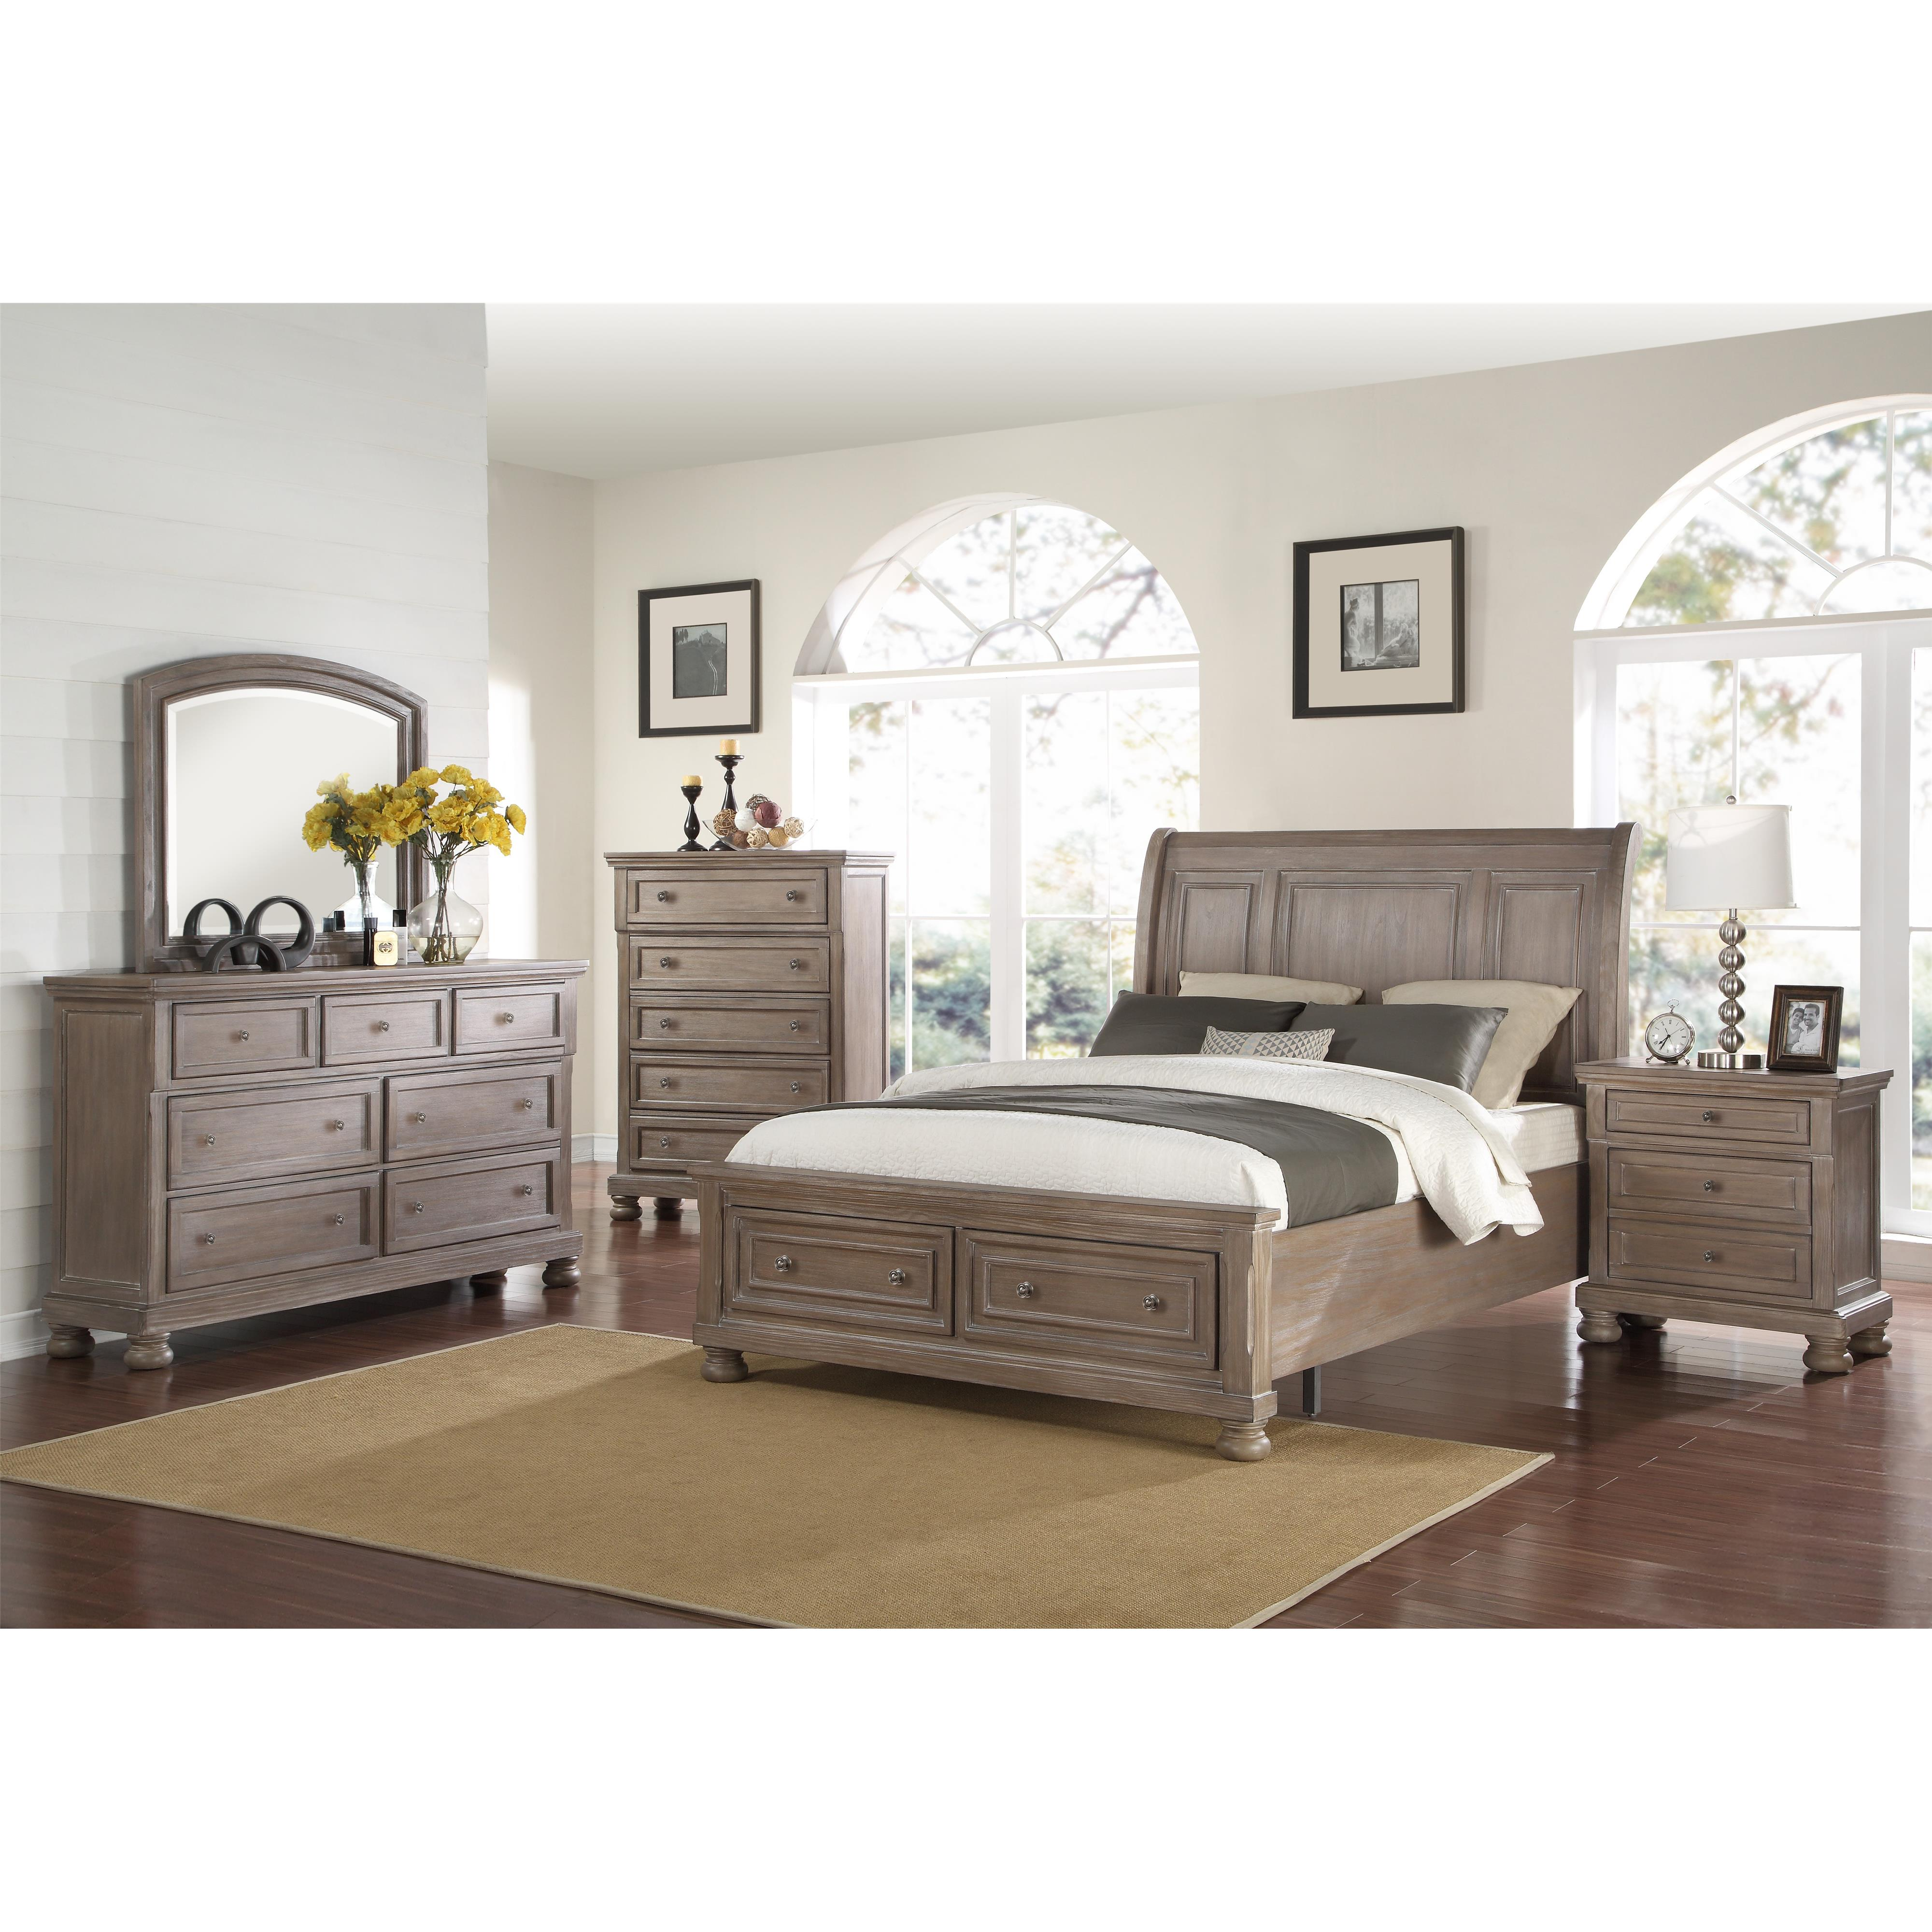 Allegra King Bedroom Group by New Classic at Beds N Stuff